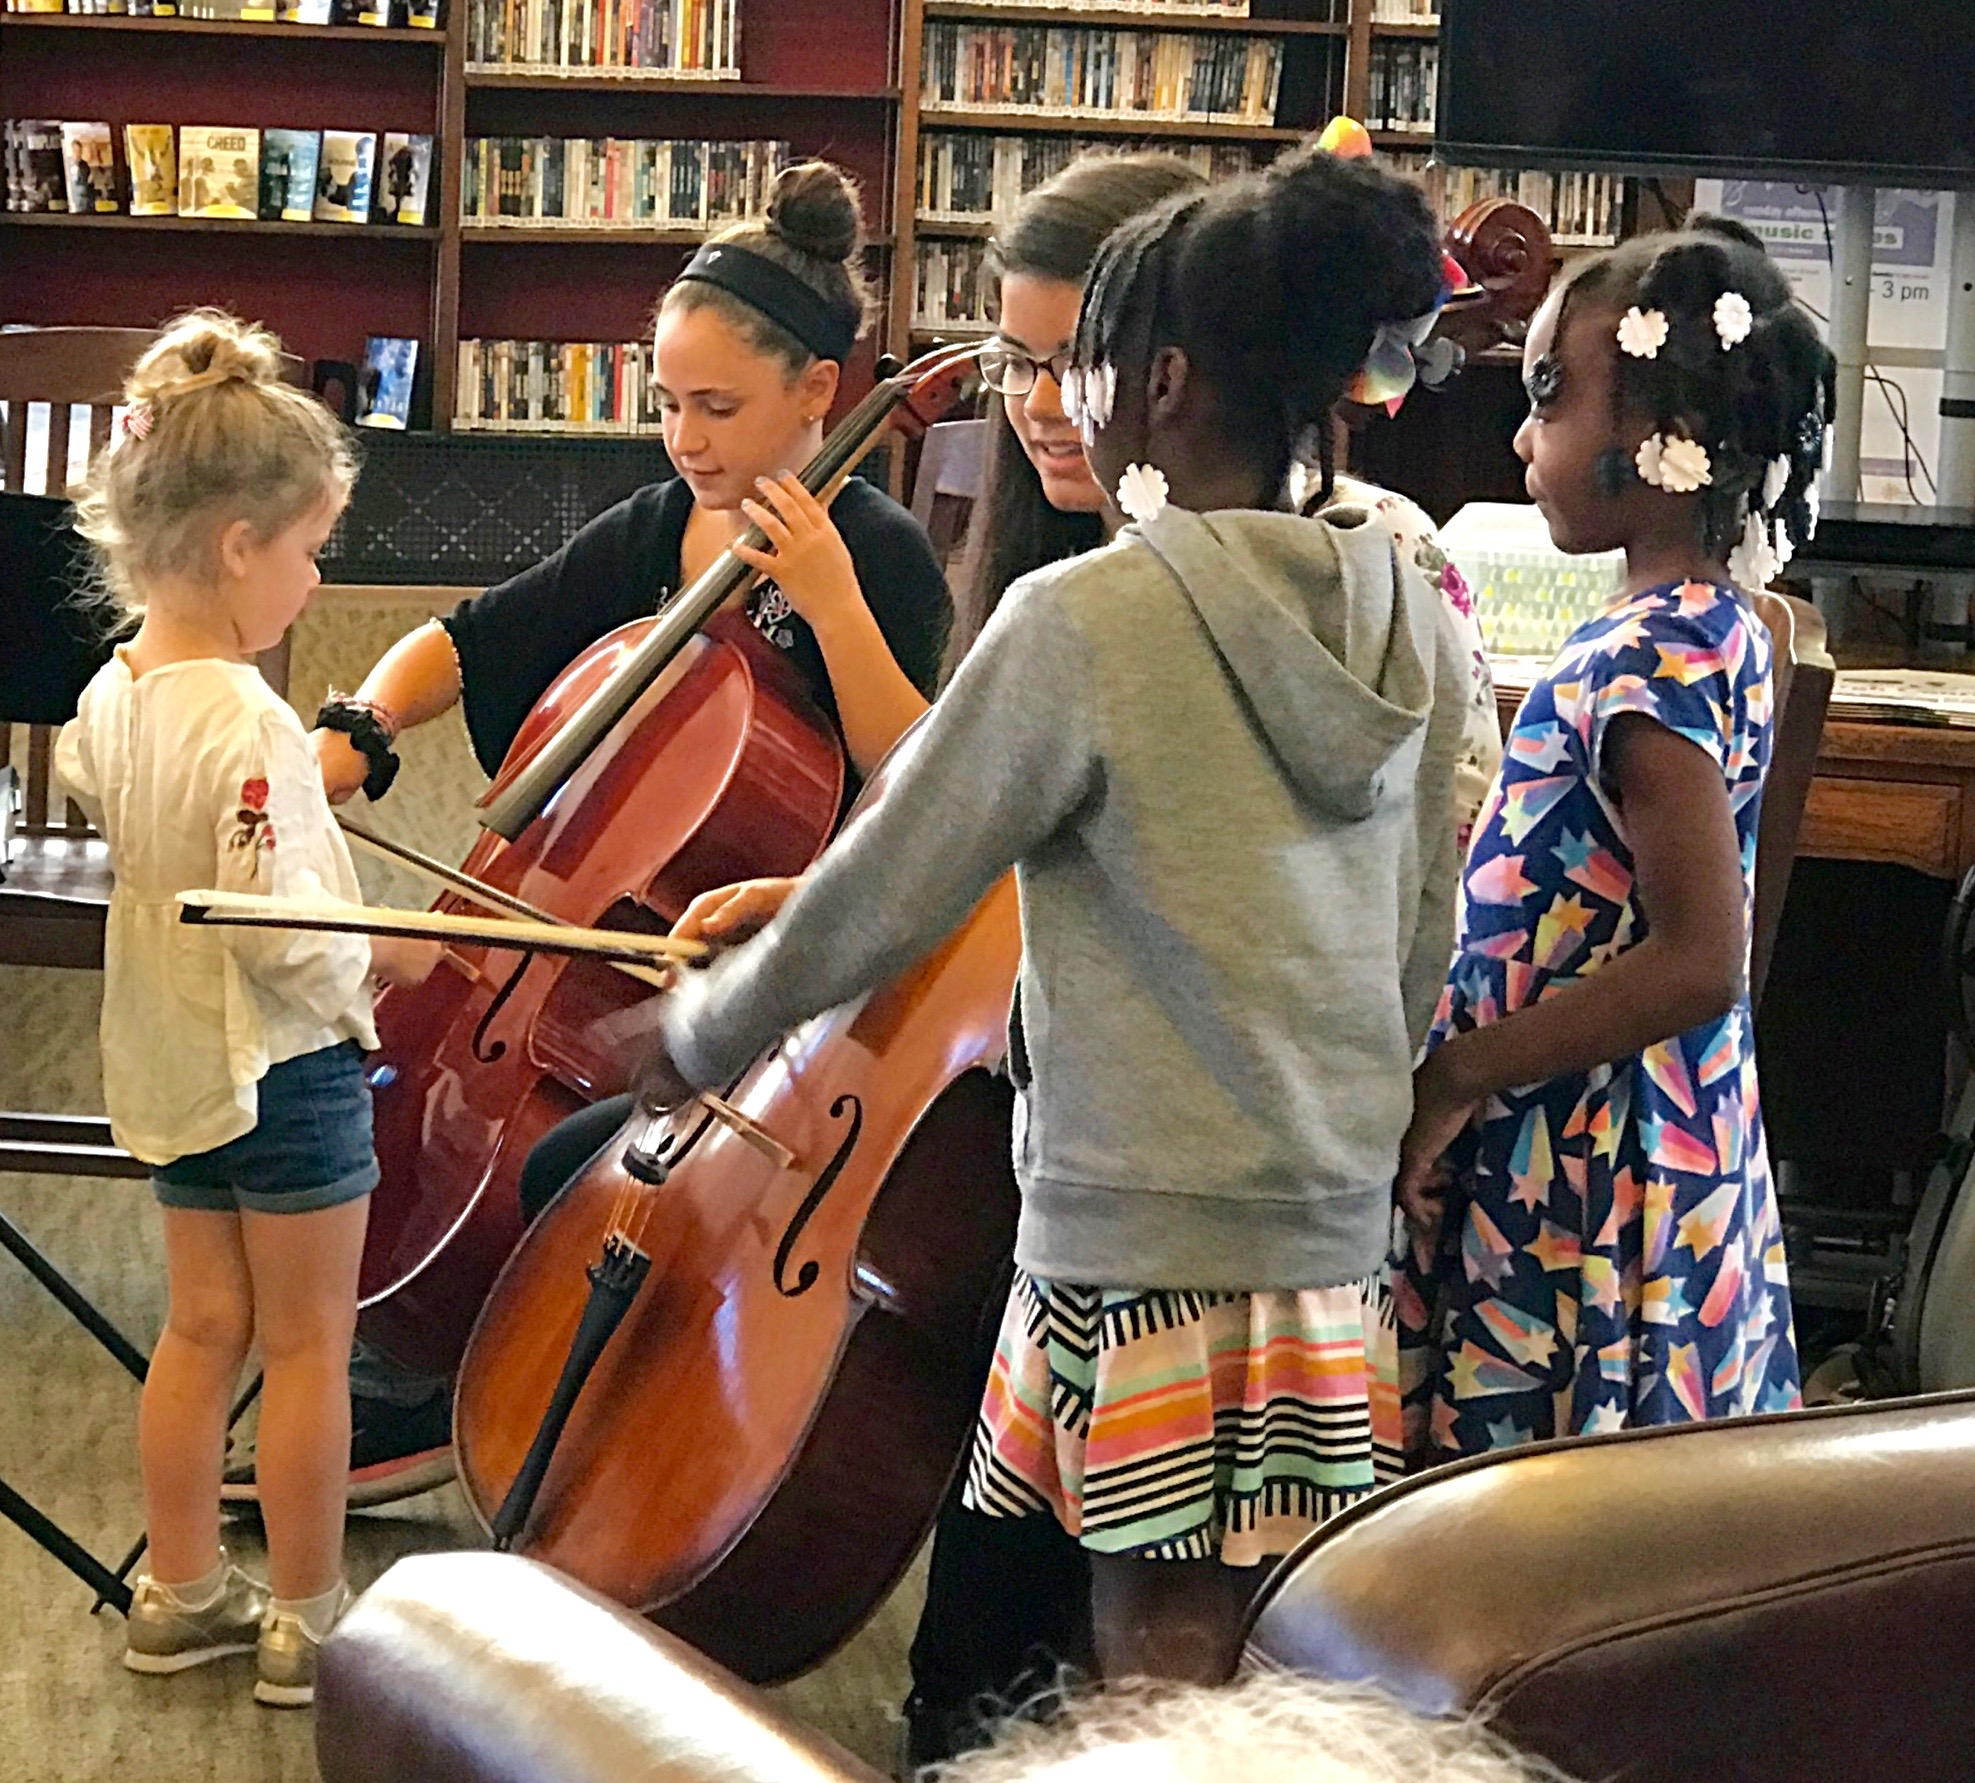 Pop-Up Concerts in Carnegie Libraries - Saturday, September 21, 2019Locations and times TBA (check back in early September)Members of the Youth Chamber Connection, Three Rivers Young Peoples Orchestras, and the Pittsburgh Youth Symphony Orchestra will perform LIVE for library visitors in neighborhoods throughout the city including East Liberty, Homewood, West End, South Side, Oakland, and the North Side.